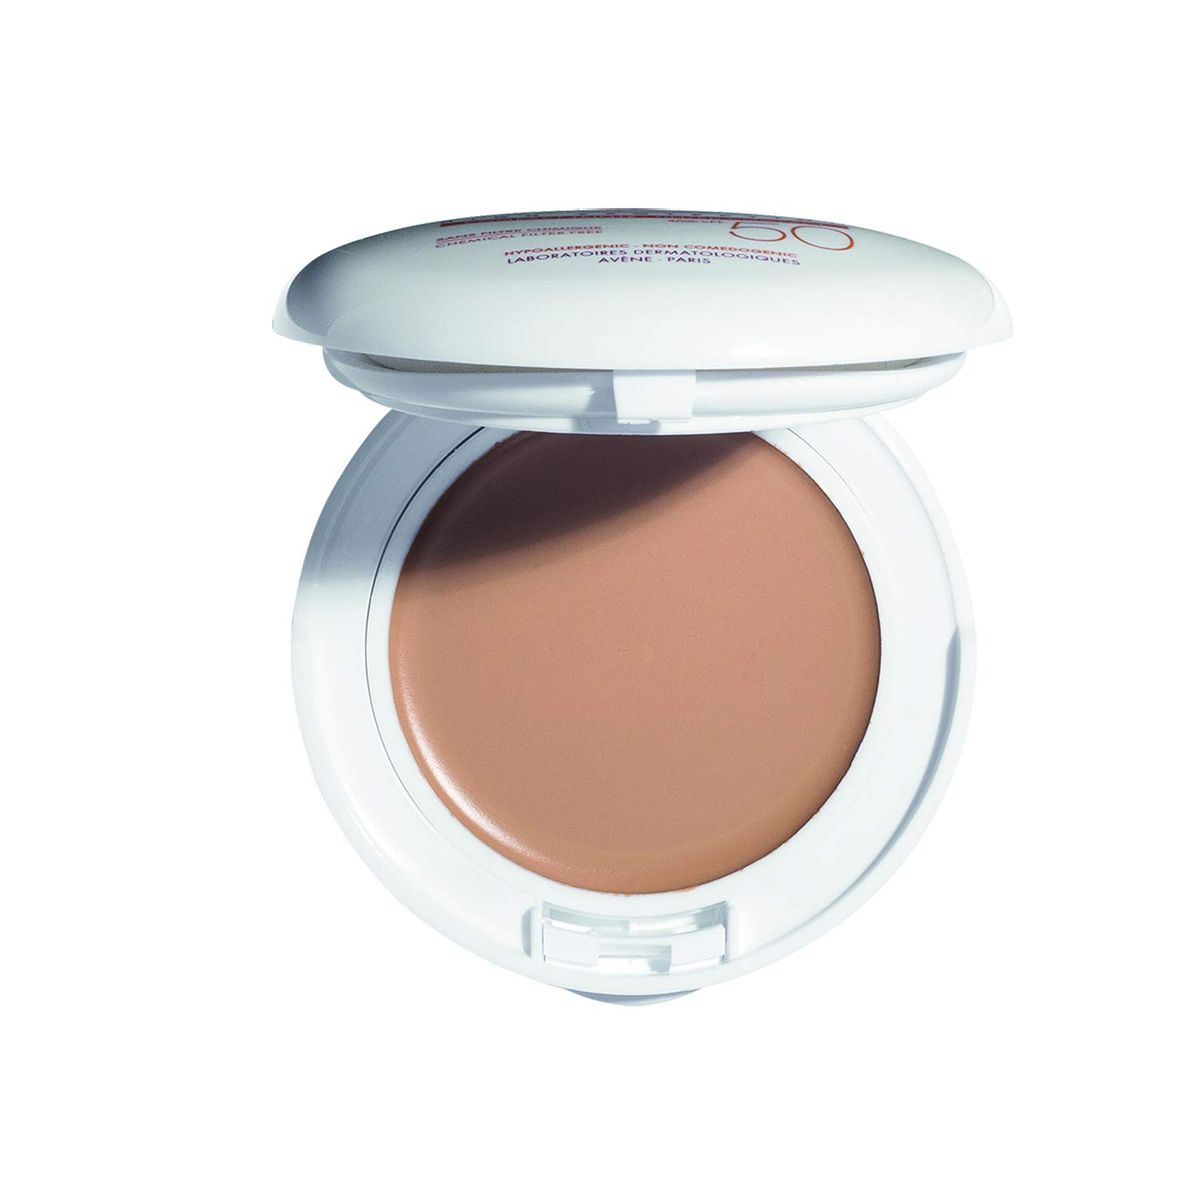 STYLECASTER | best foundation | foundation for dry skin | foundation for eczema | full-coverage foundation | drugstore foundation | natural foundation | flawless foundation | moisturizing foundation |  makeup looks | makeup ideas | Avene Eau thermale compact foundation amazon